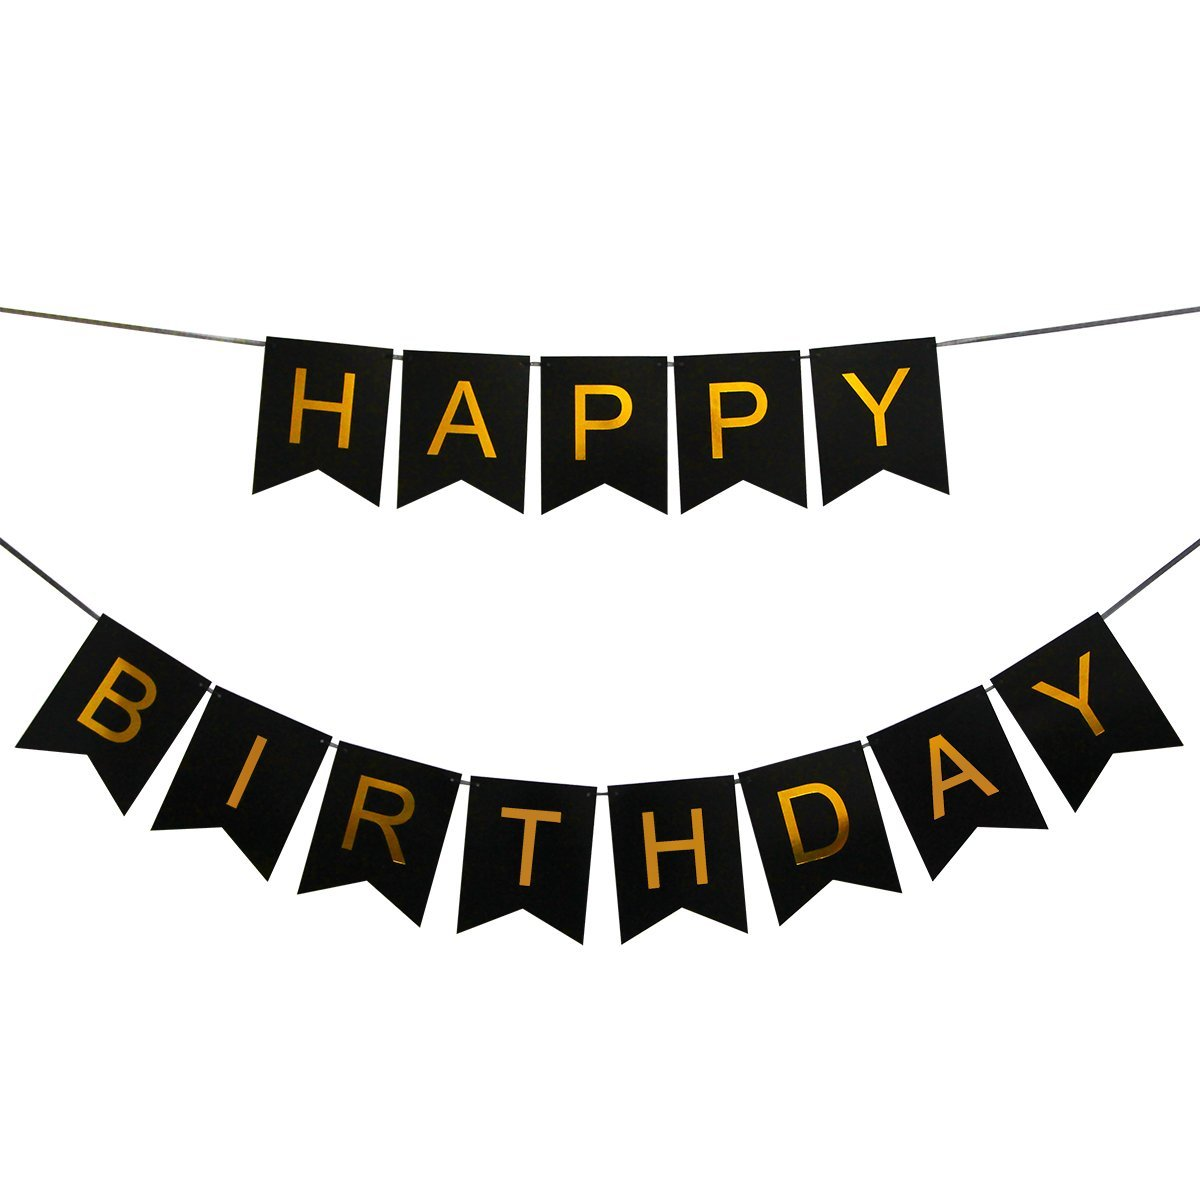 A Touch Of Class Home Decor Innoru Tm Happy Birthday Banner Black And Gold Birthday